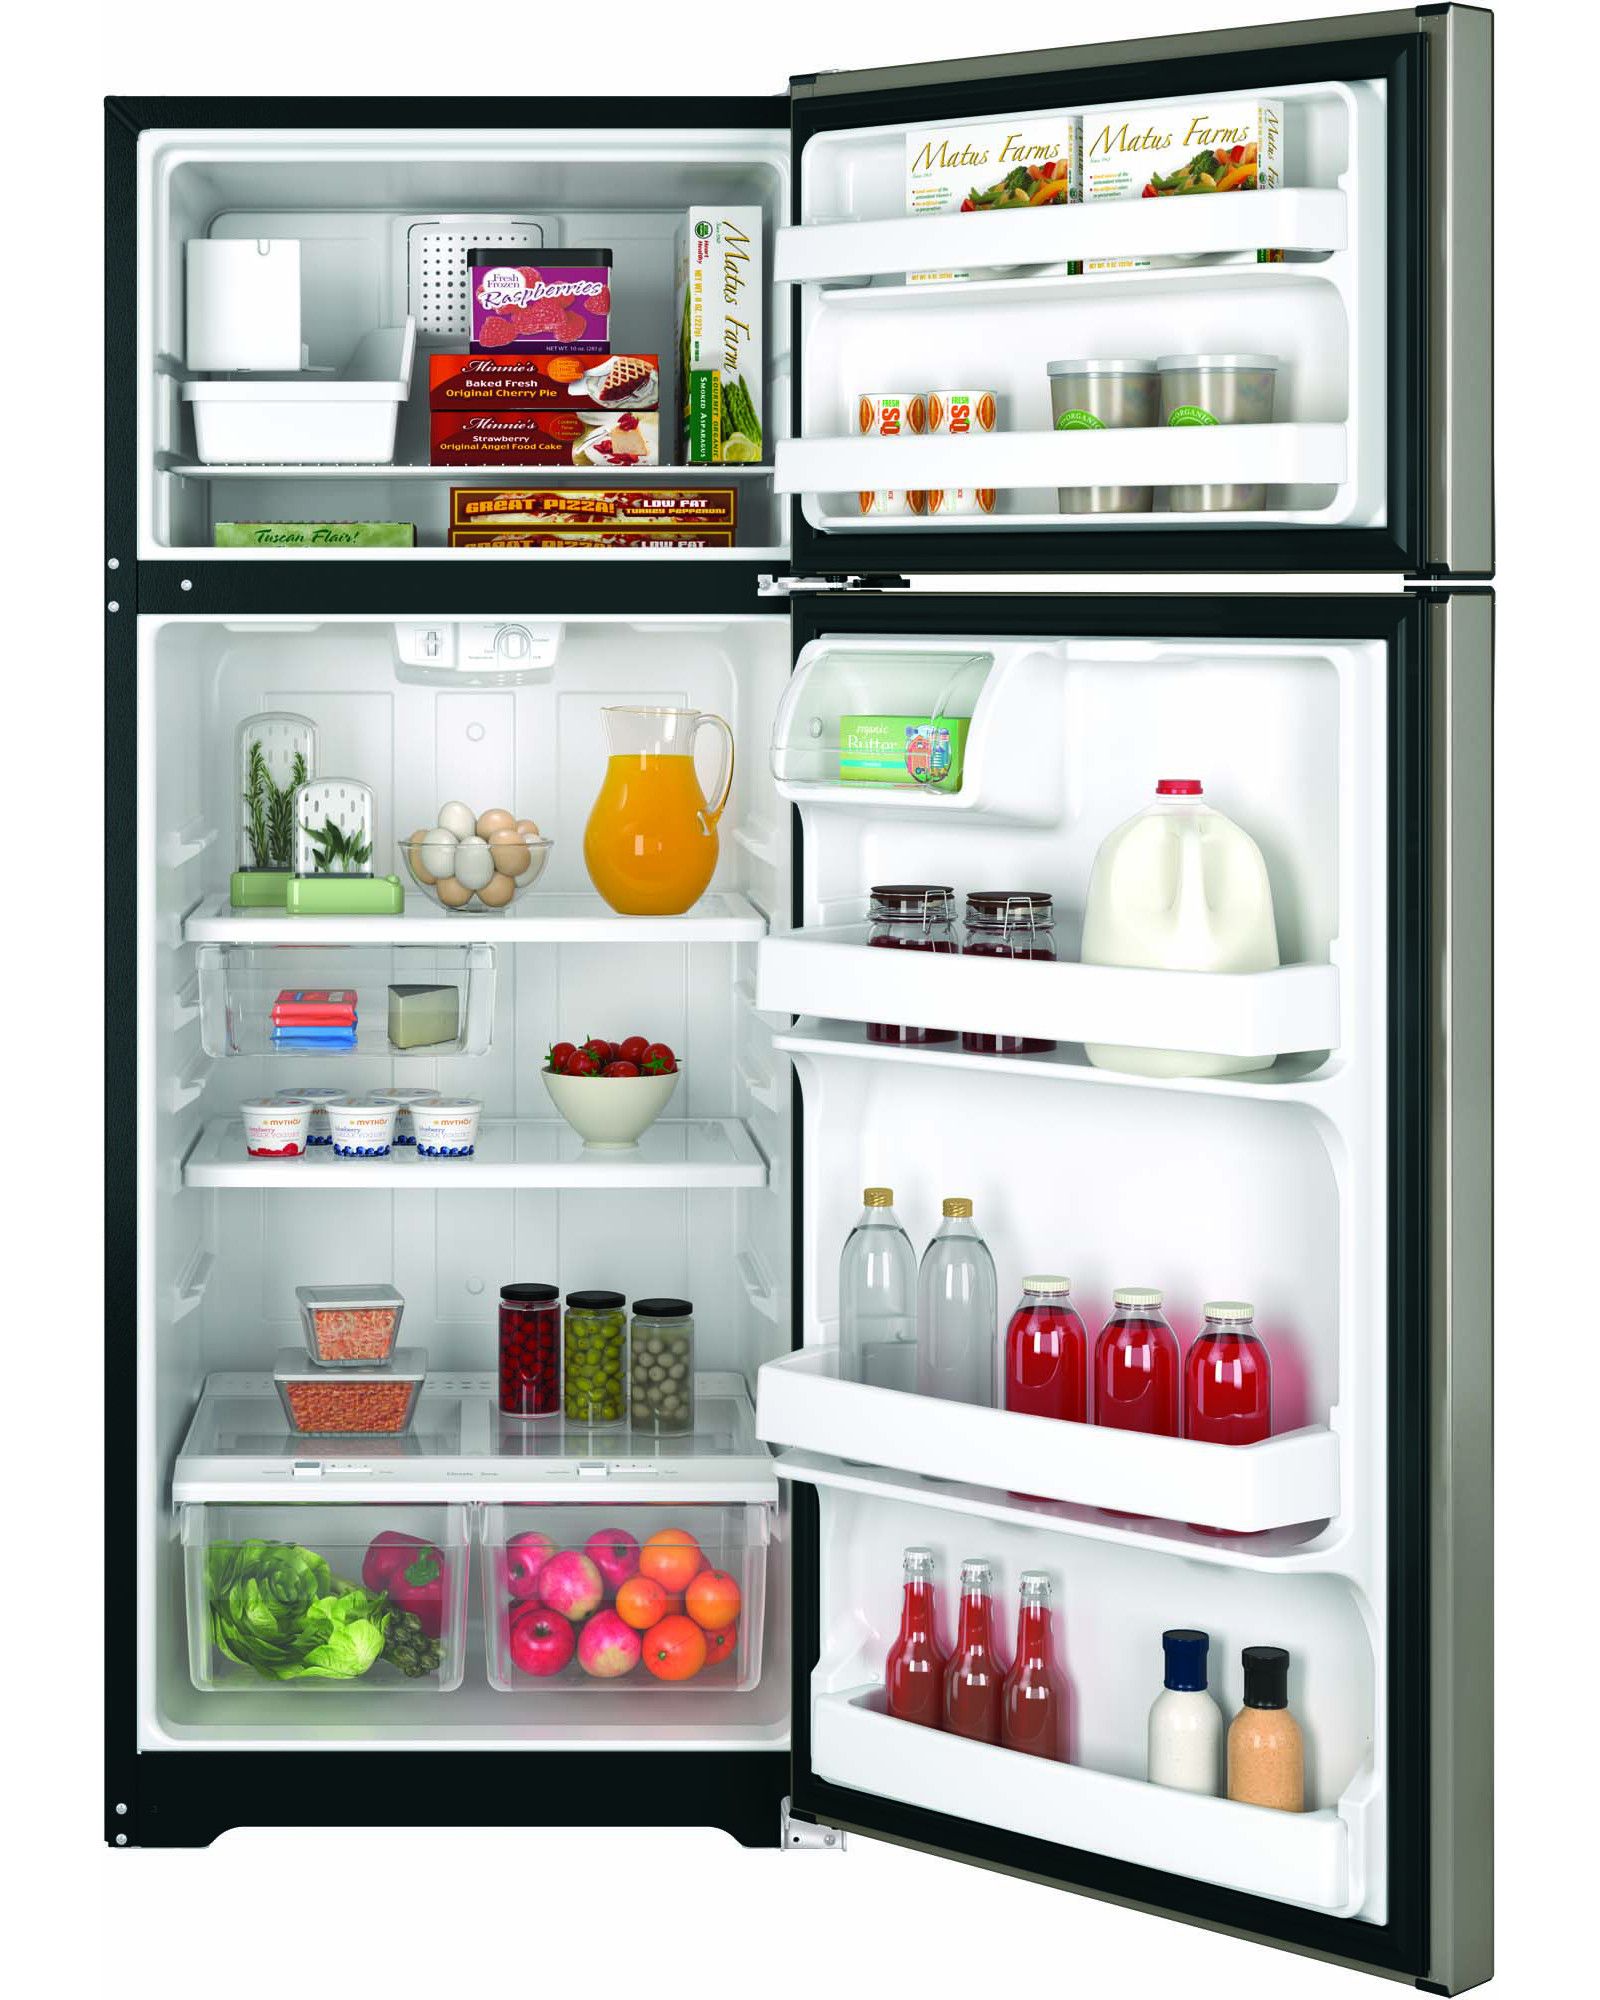 GE Appliances GIE18GCHSA 17.5 cu. ft. Top-Freezer Refrigerator - Metallic